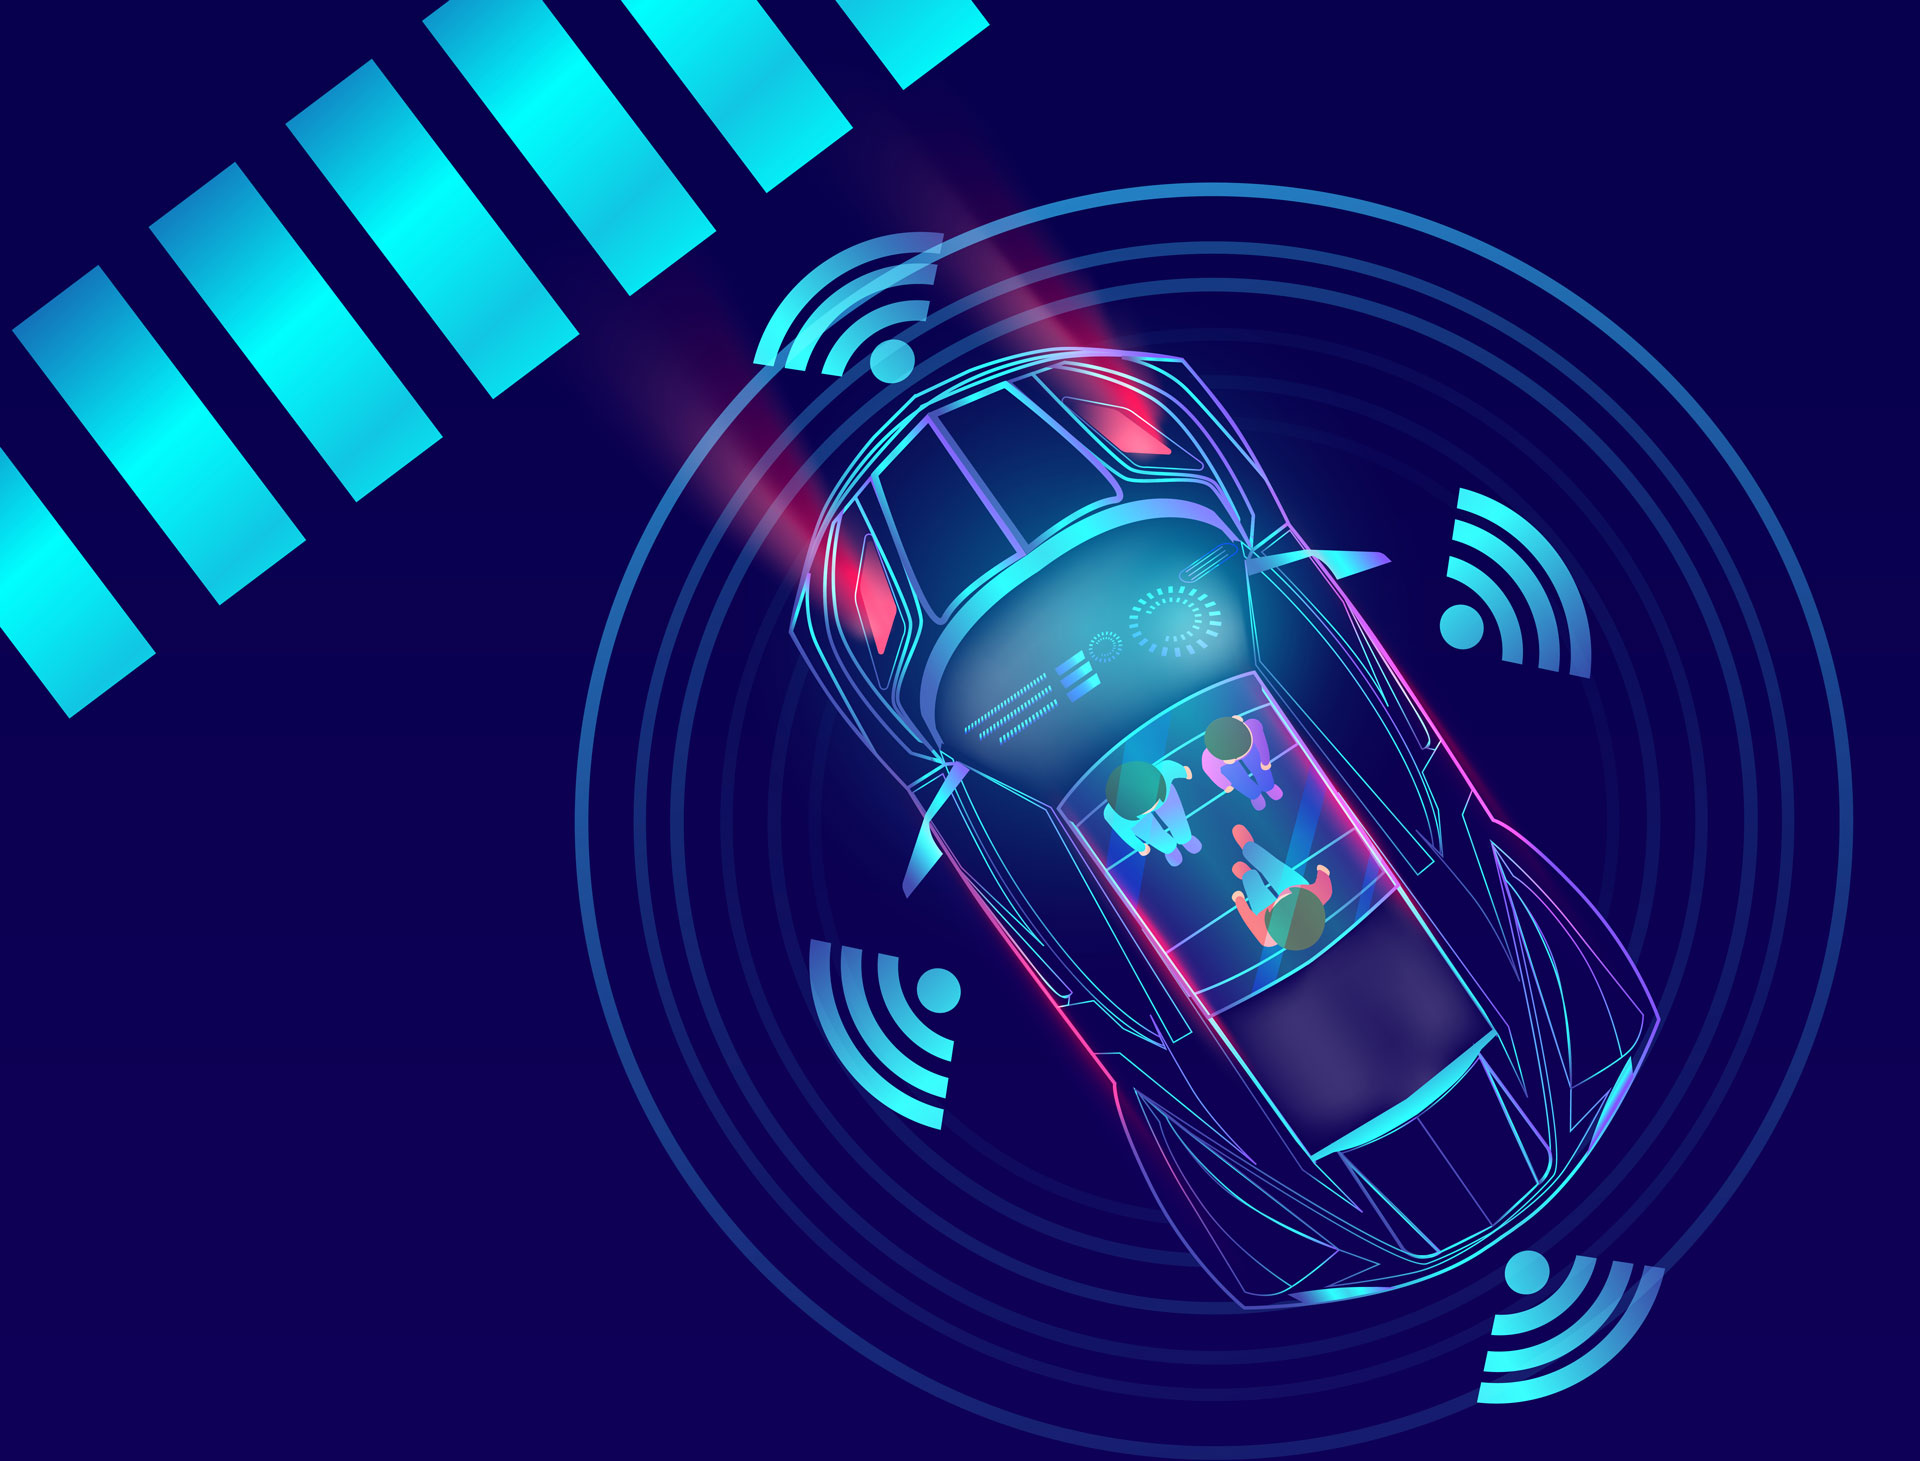 Safety, reliability and rigour will be key to making self-driving cars a virtual reality